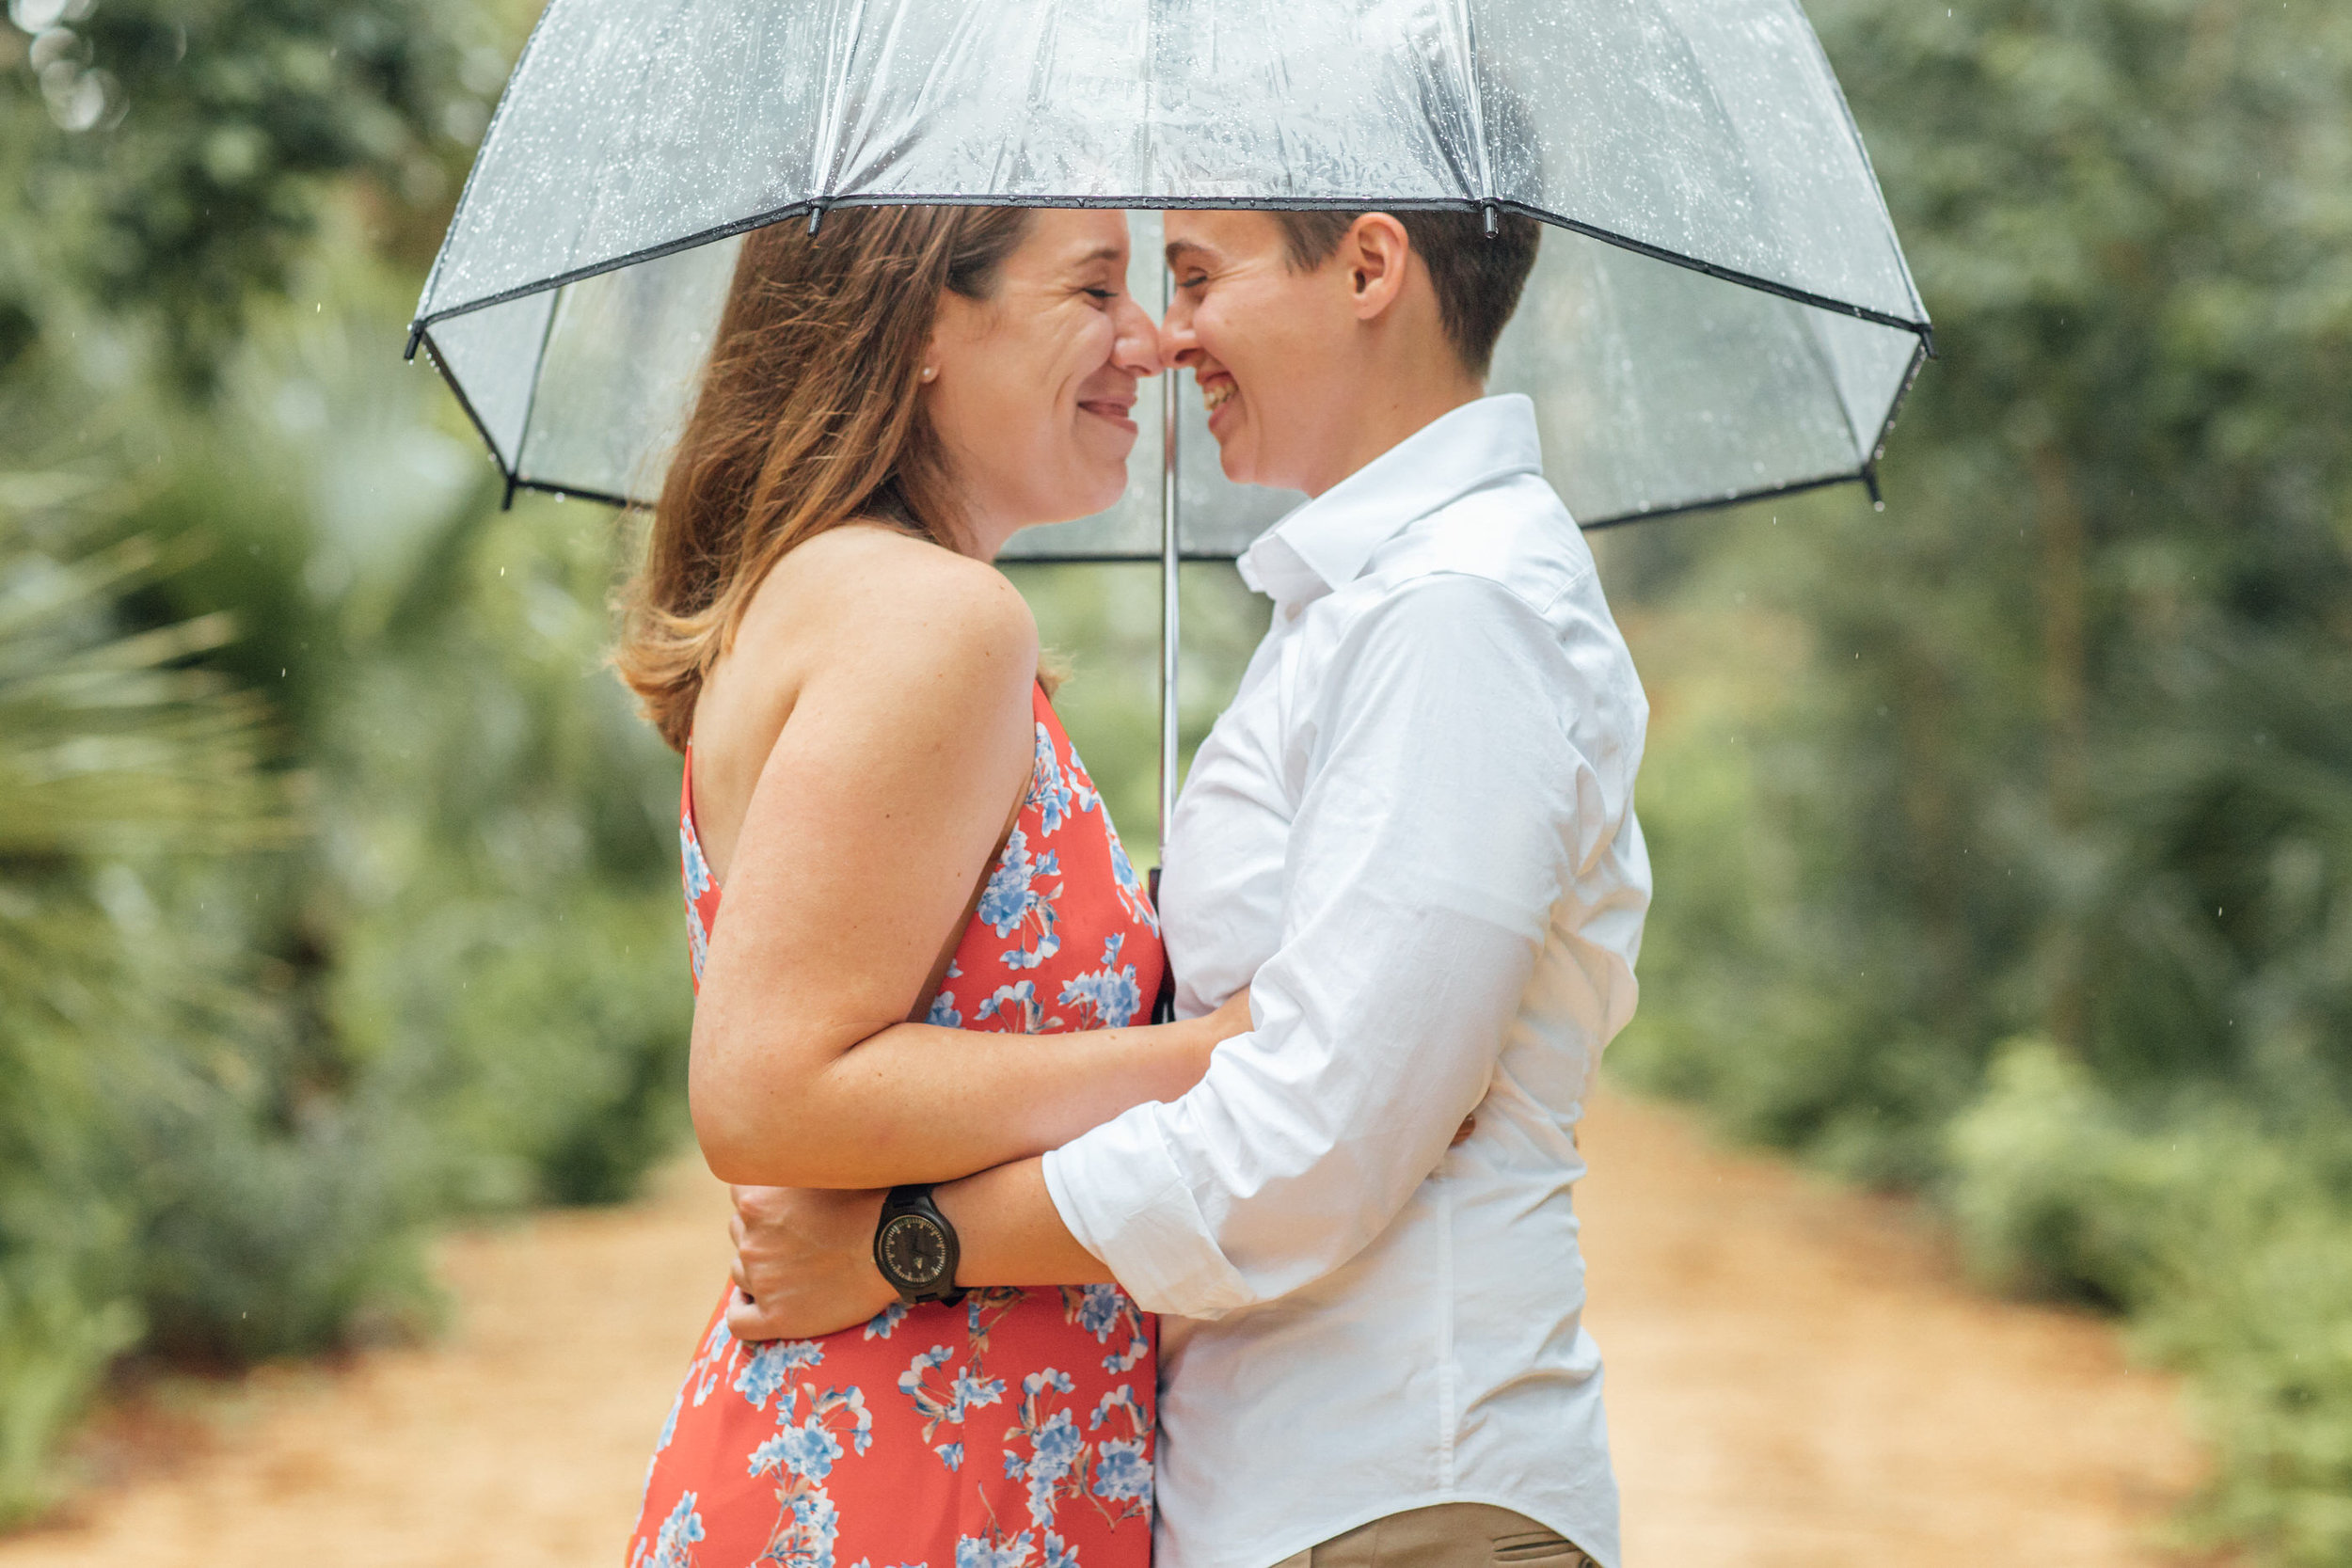 Orlando Natural Forest State Park Engagement Photos- Romantic LGBT Engaged Couples photos29.jpg